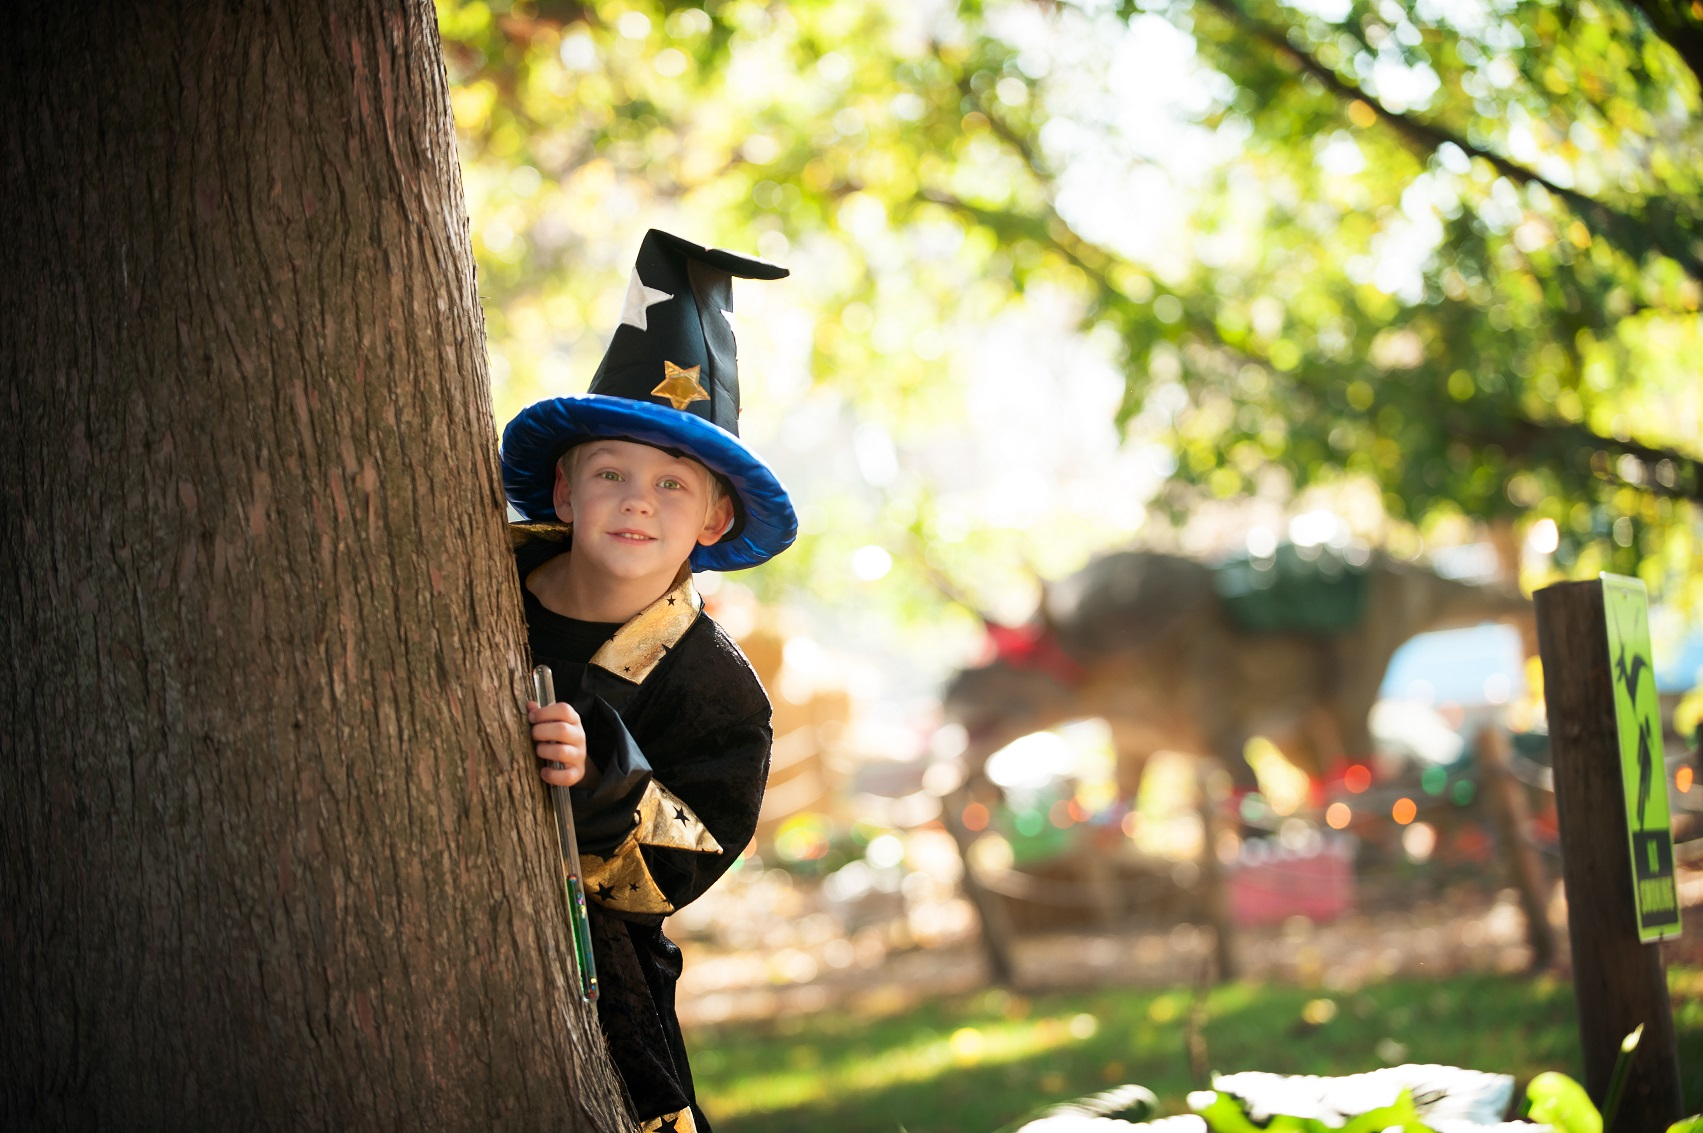 Boy in wizard costume peeking behind tree